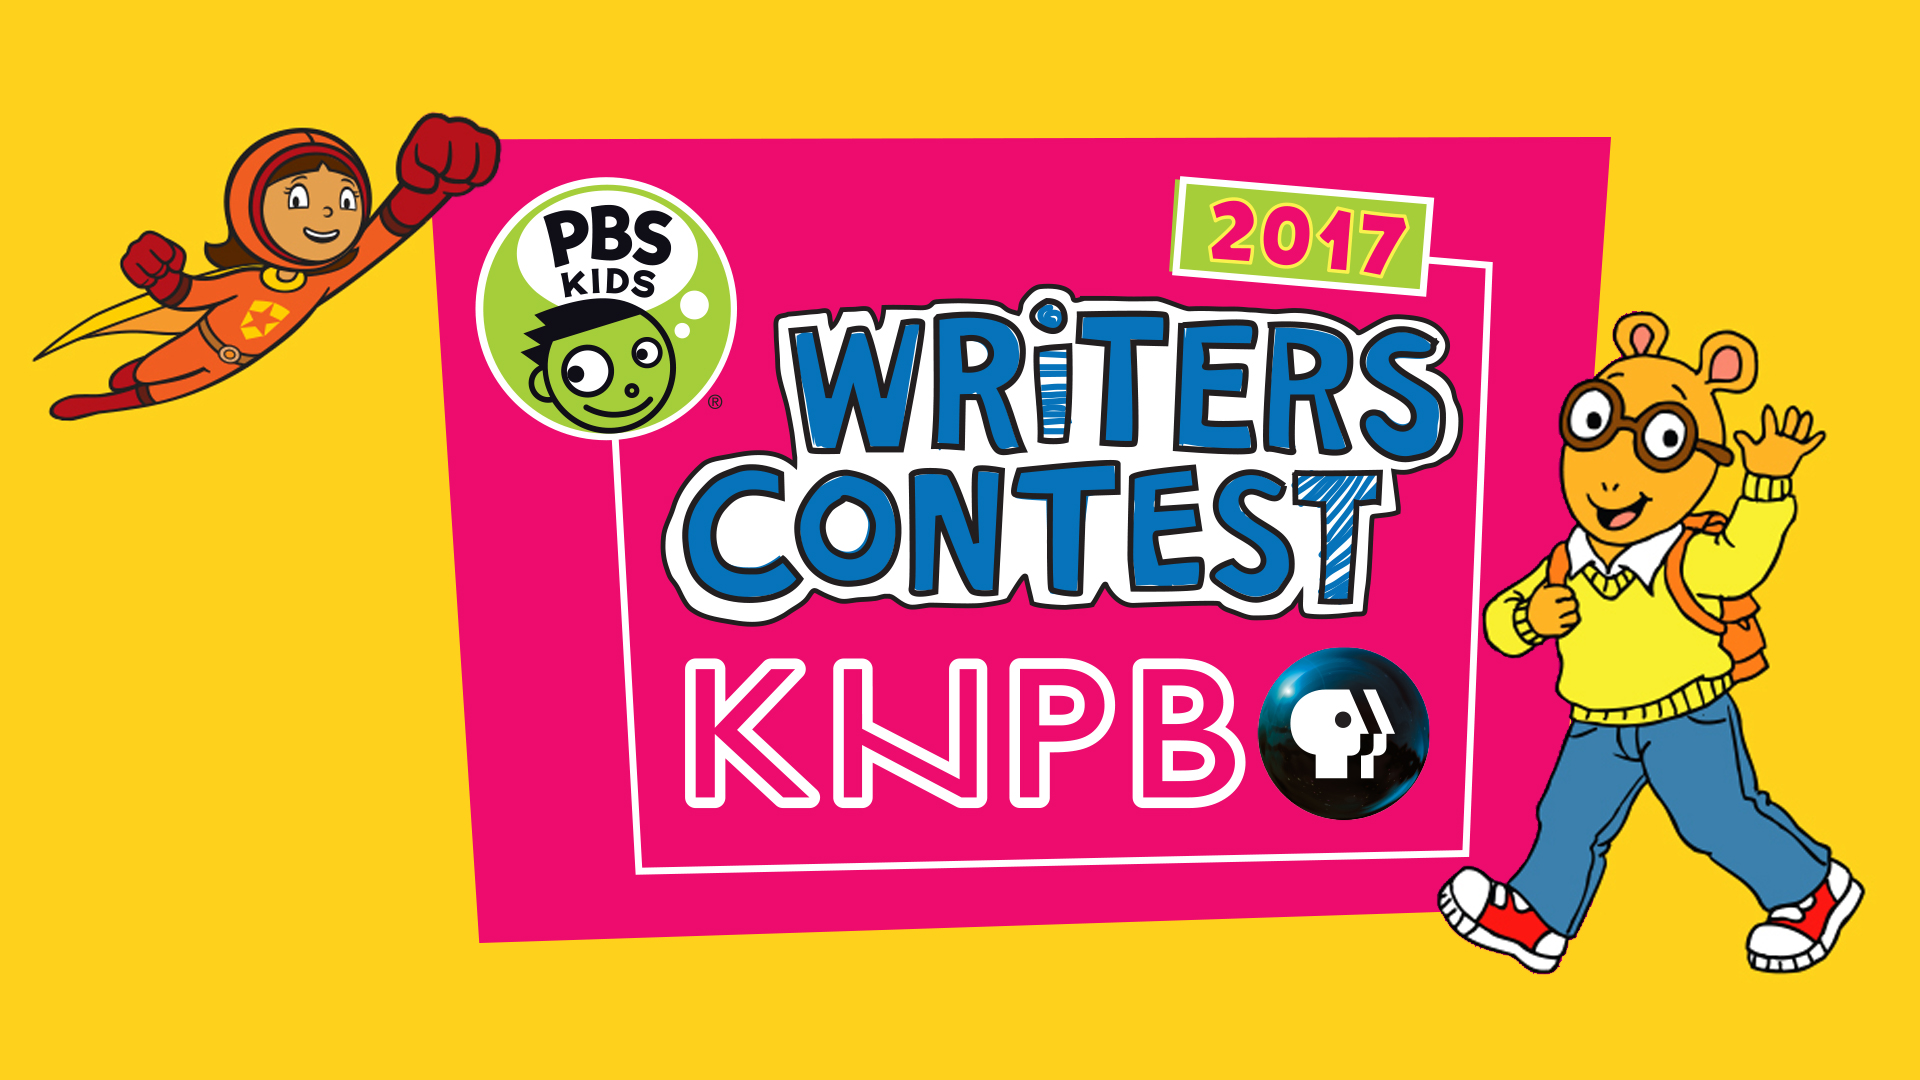 KNPB PBS KIDS Writers Contest